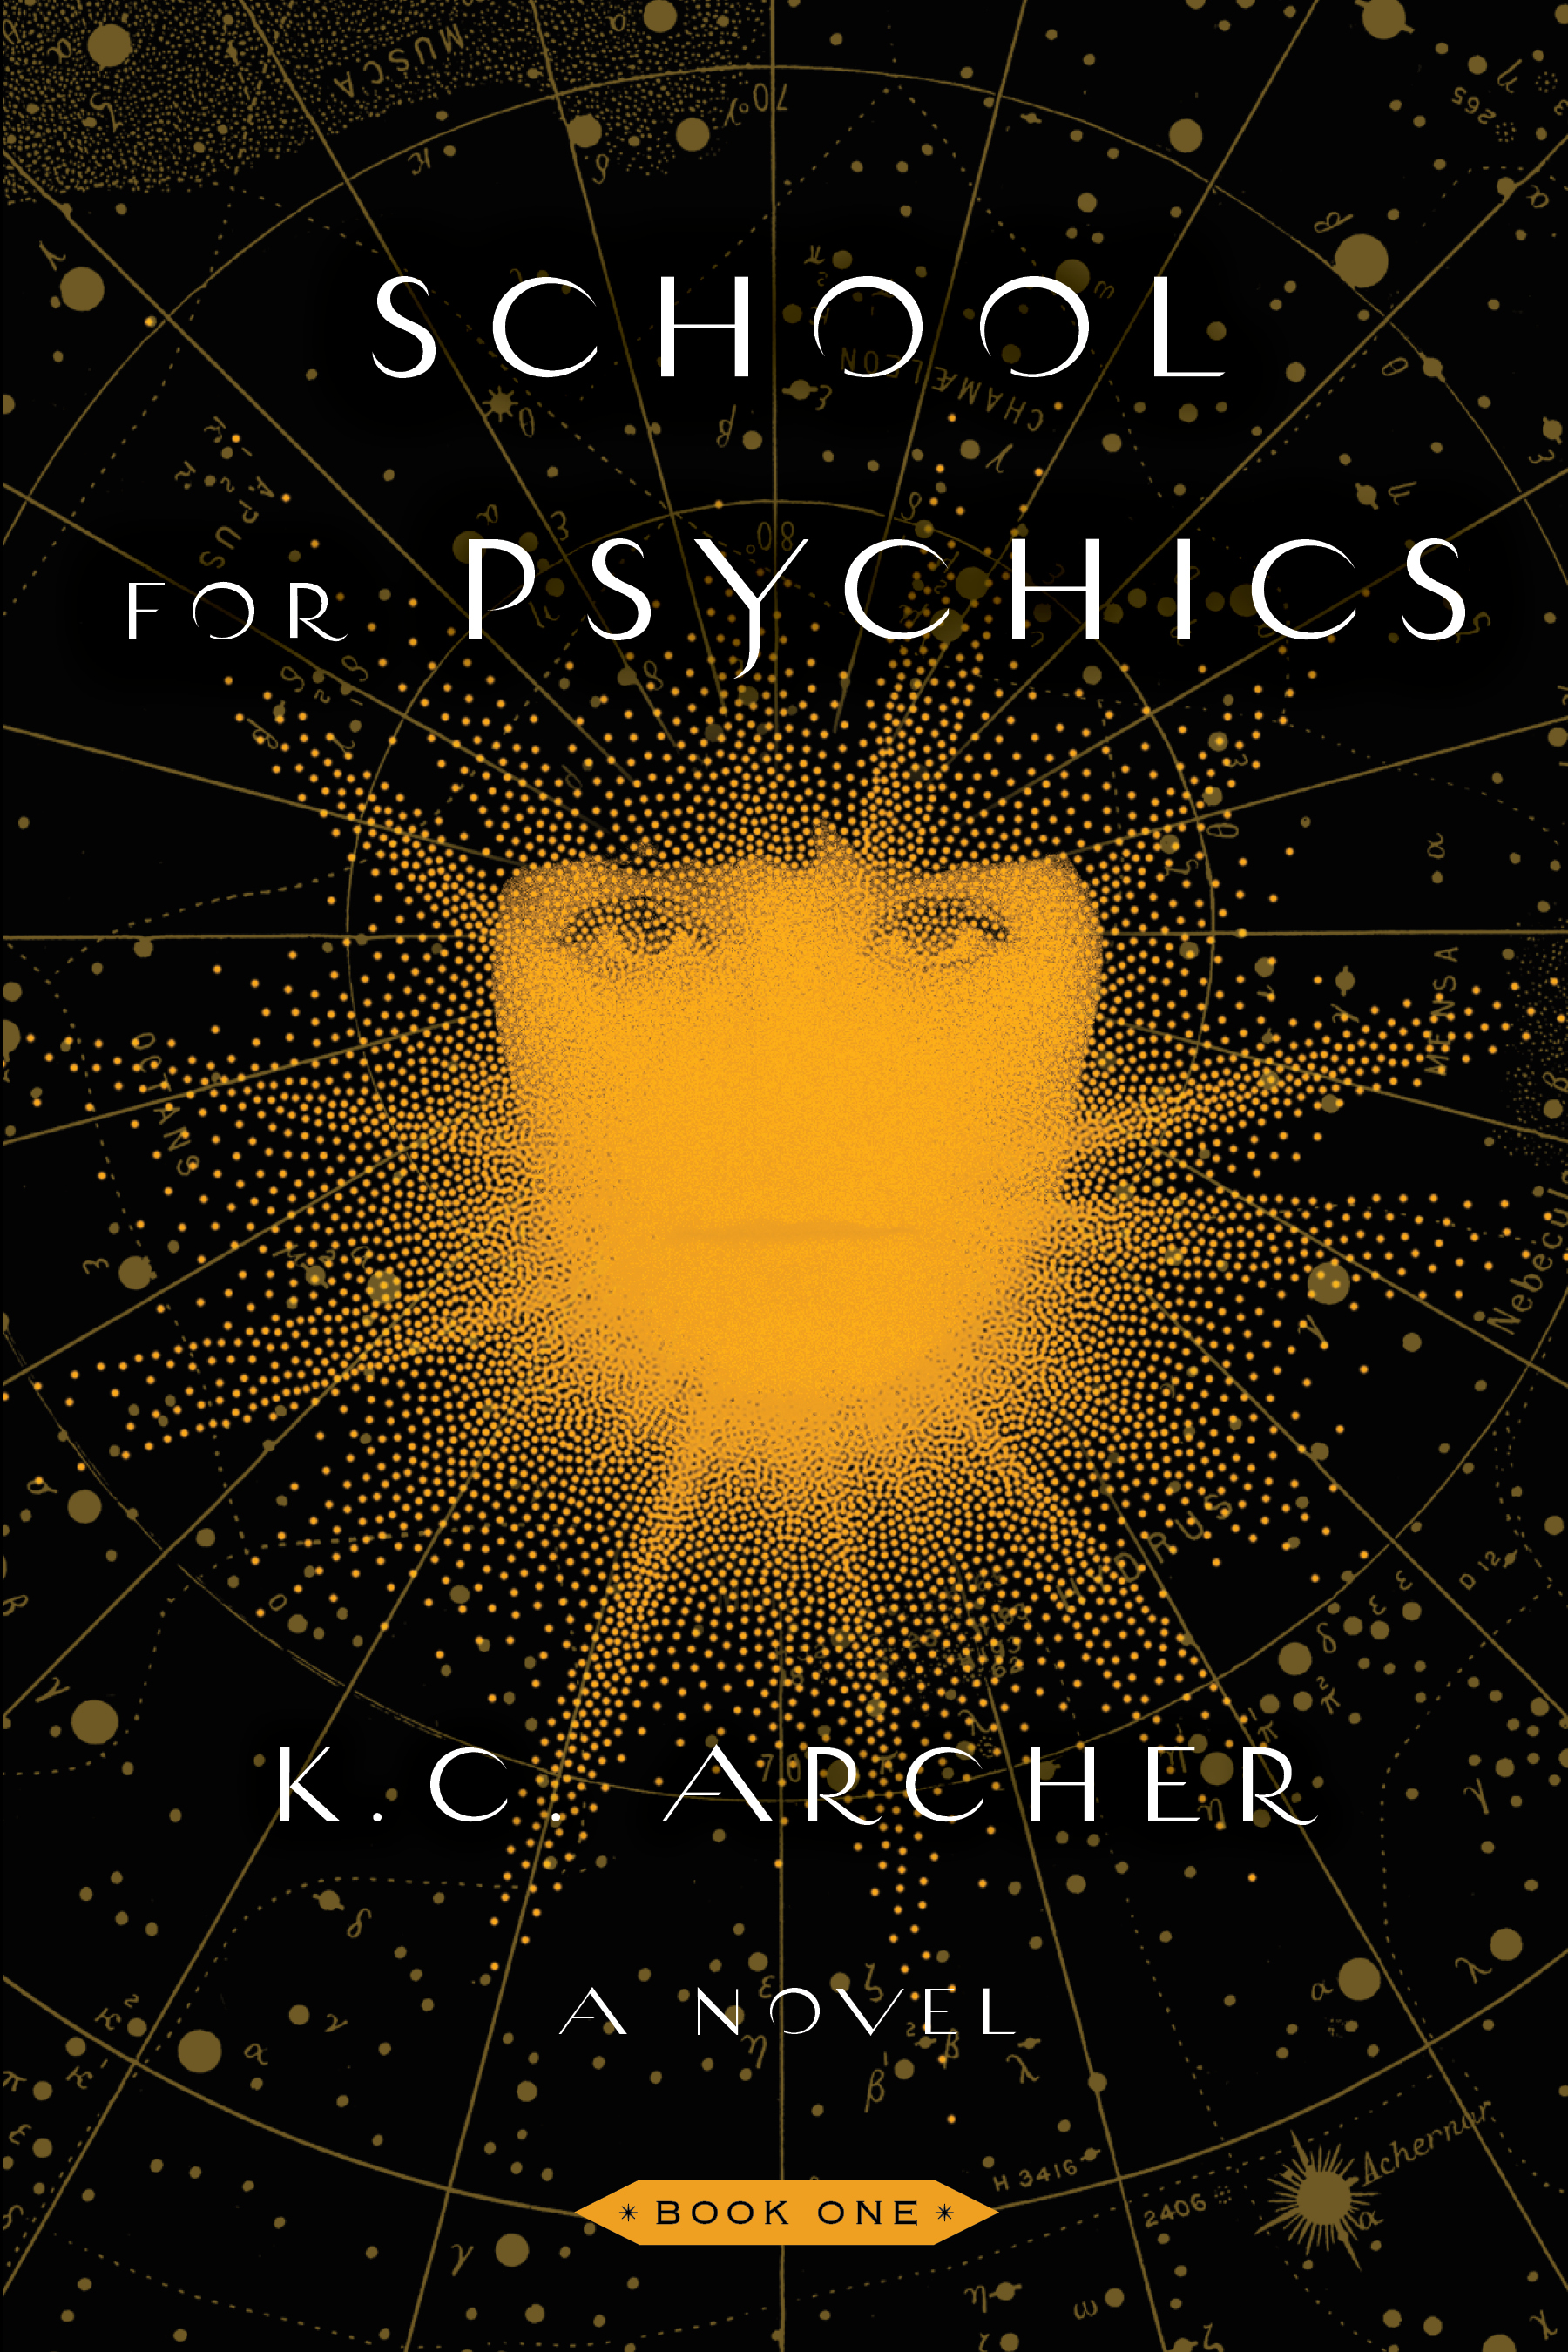 """School for Psychics"" by K.C. Archer (Image: Courtesy Simon & Schuster){ }"